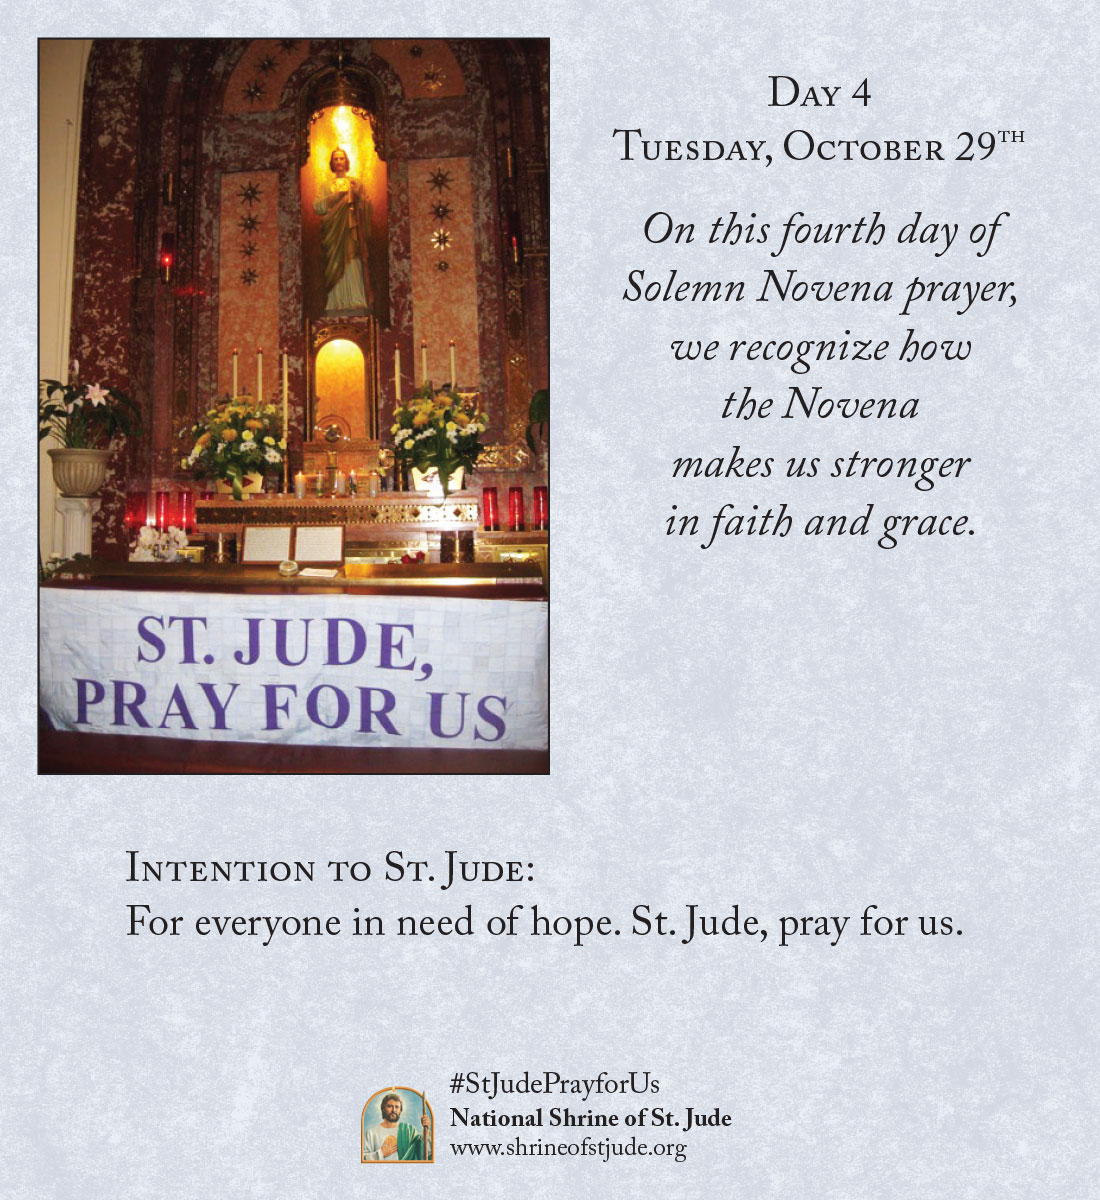 PC Novena Oct 2019 4